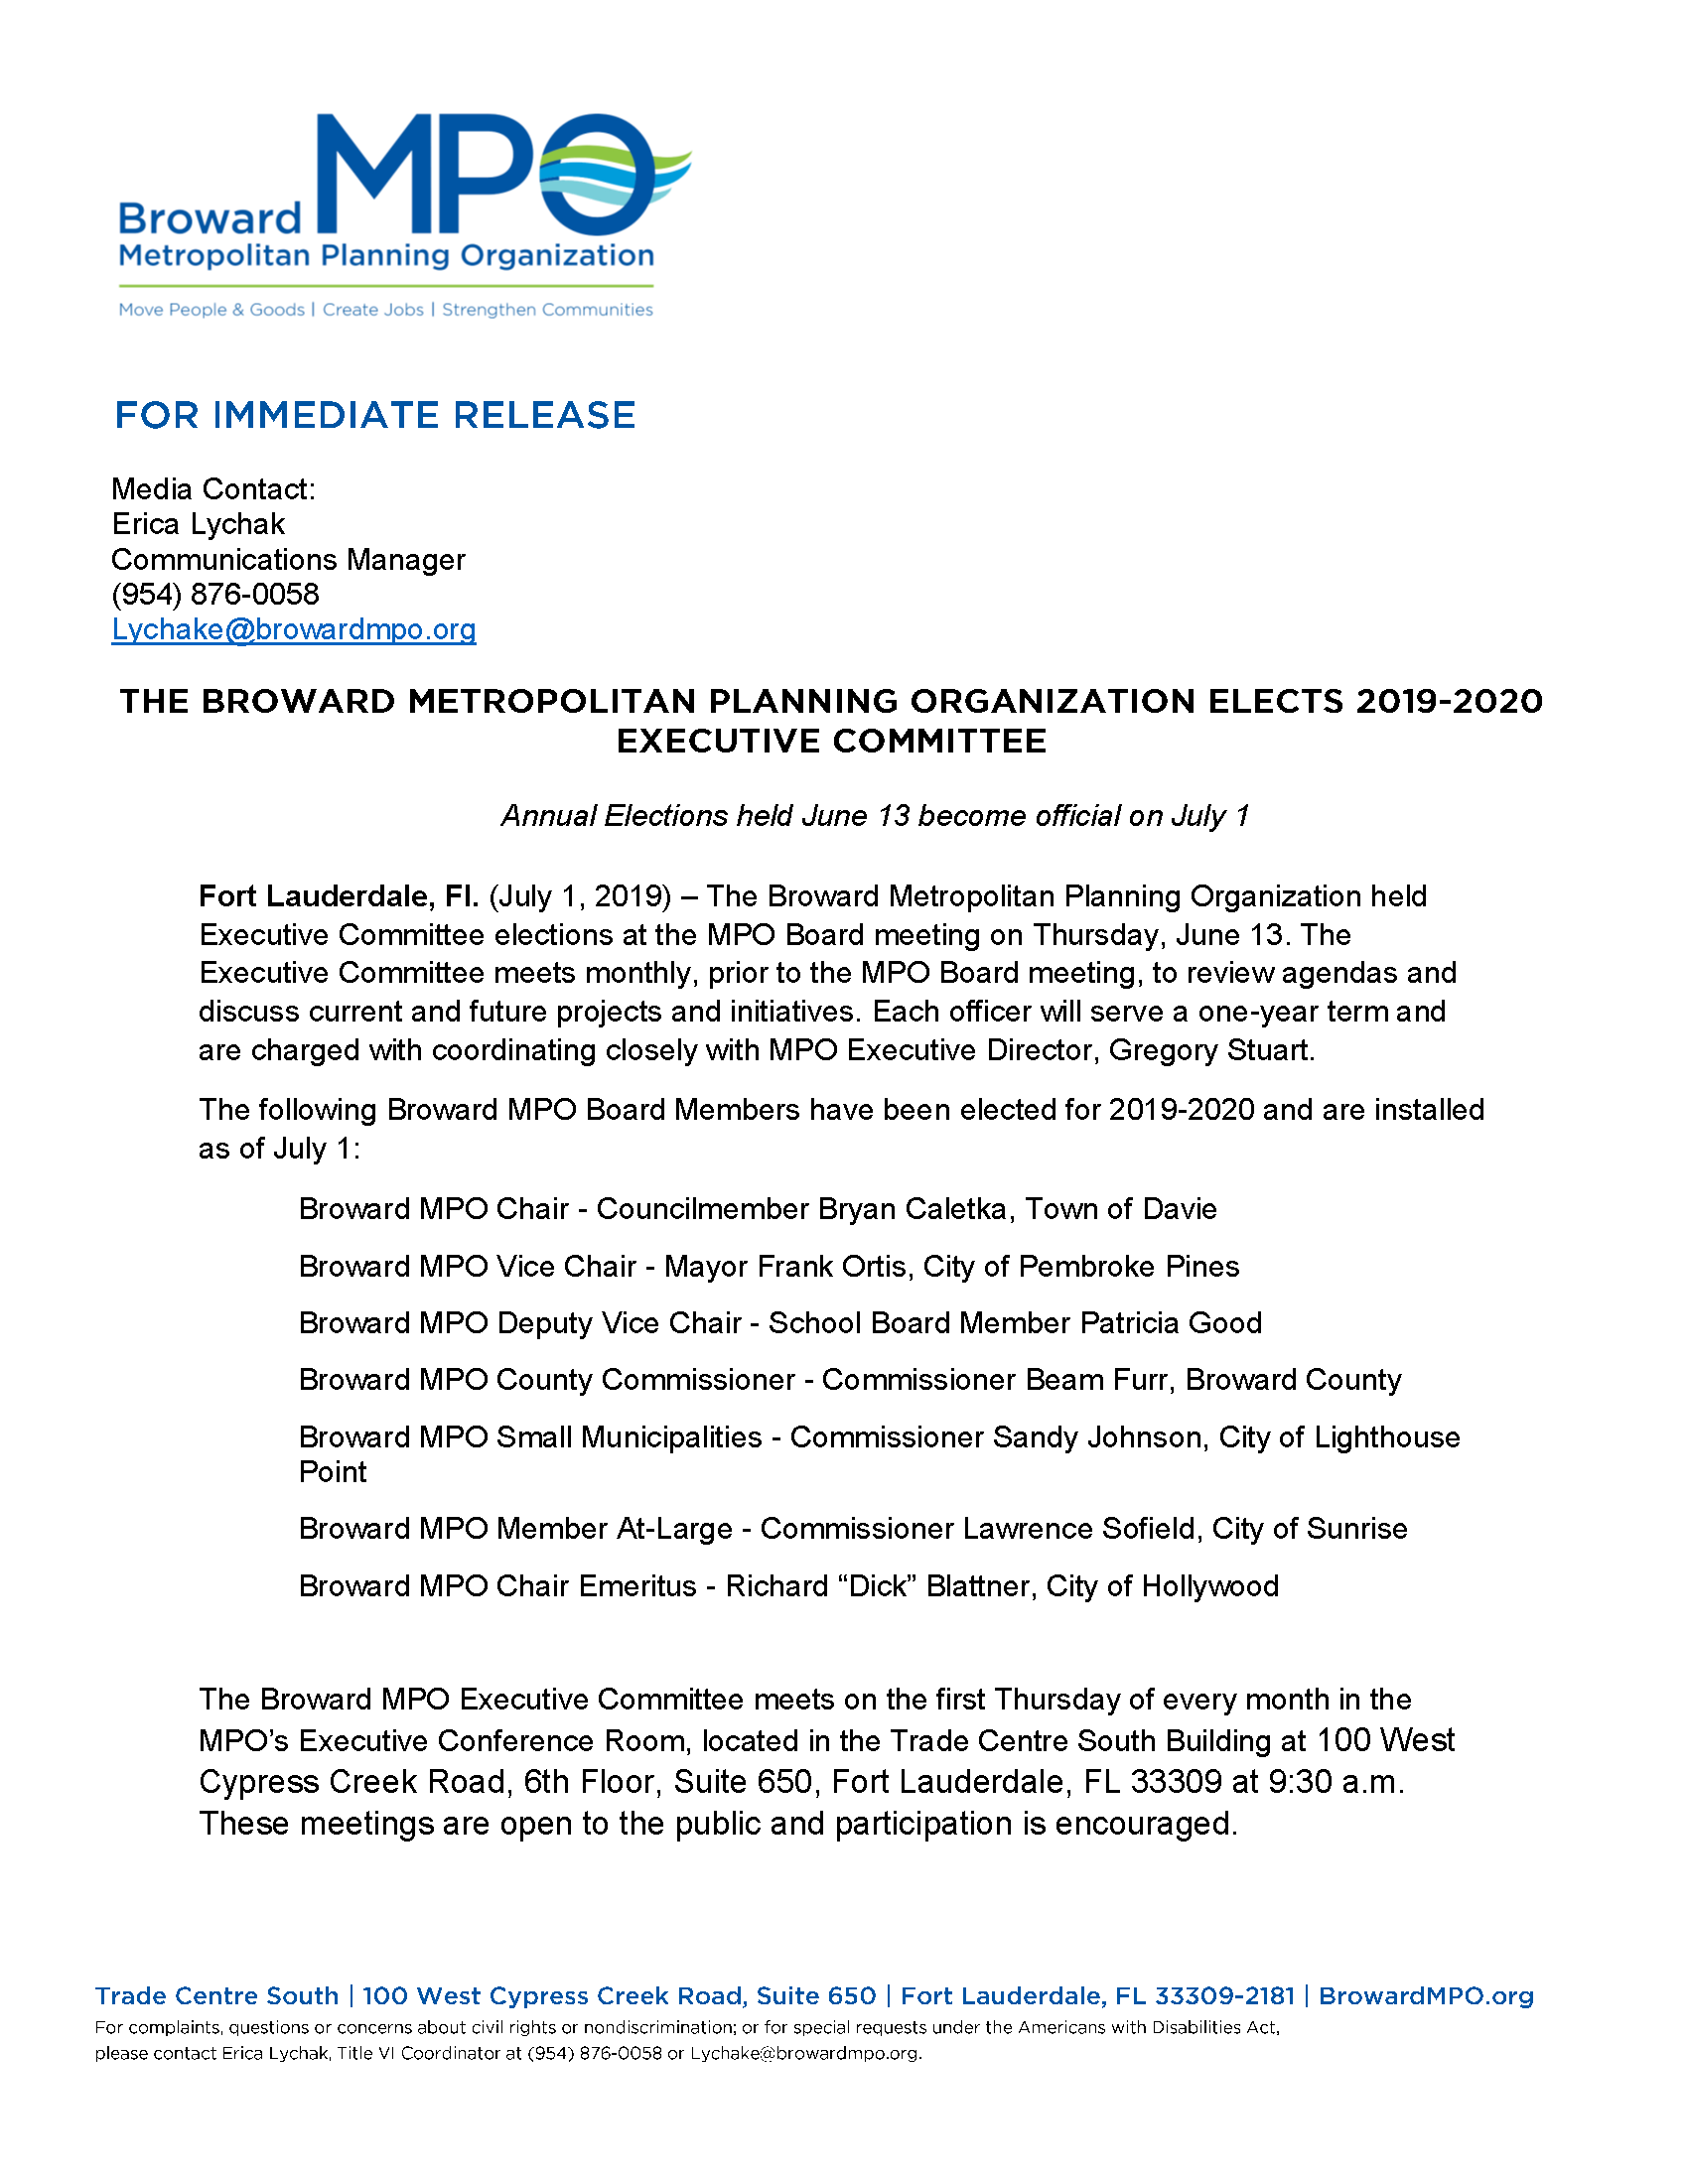 20190791 Executive Committee press release Page 1